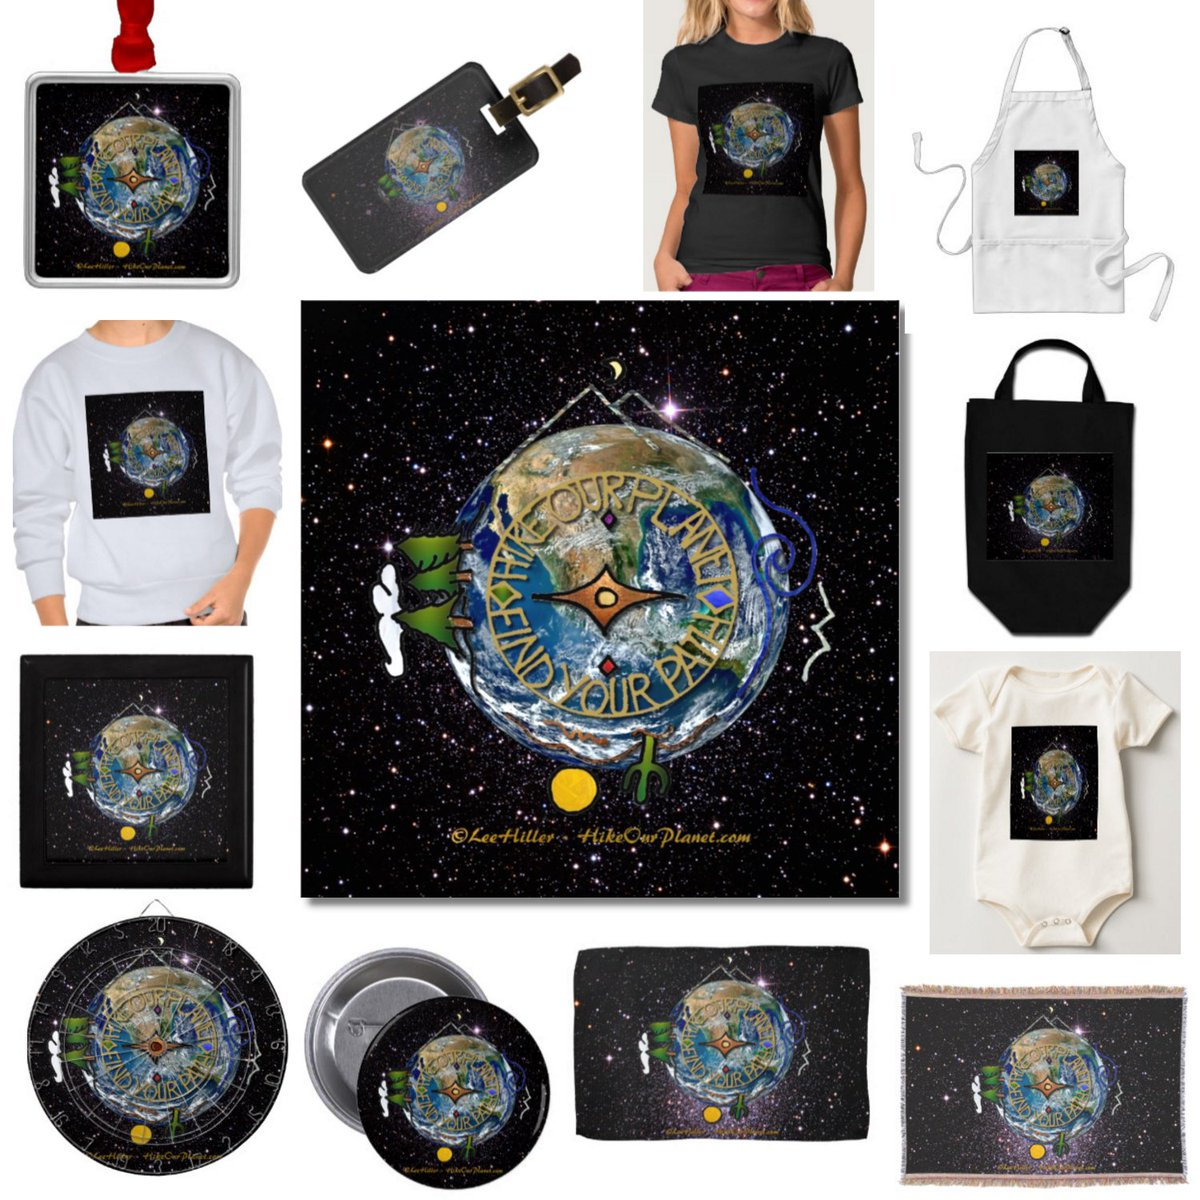 Hiker&#39;s Soul Compass #FindYourPath #Earth #Space  http:// bitly.com/HSCSpace  &nbsp;   #Hiking #HomeDecor #Tags #Buttons #Stickers<br>http://pic.twitter.com/F1q67fjaSG